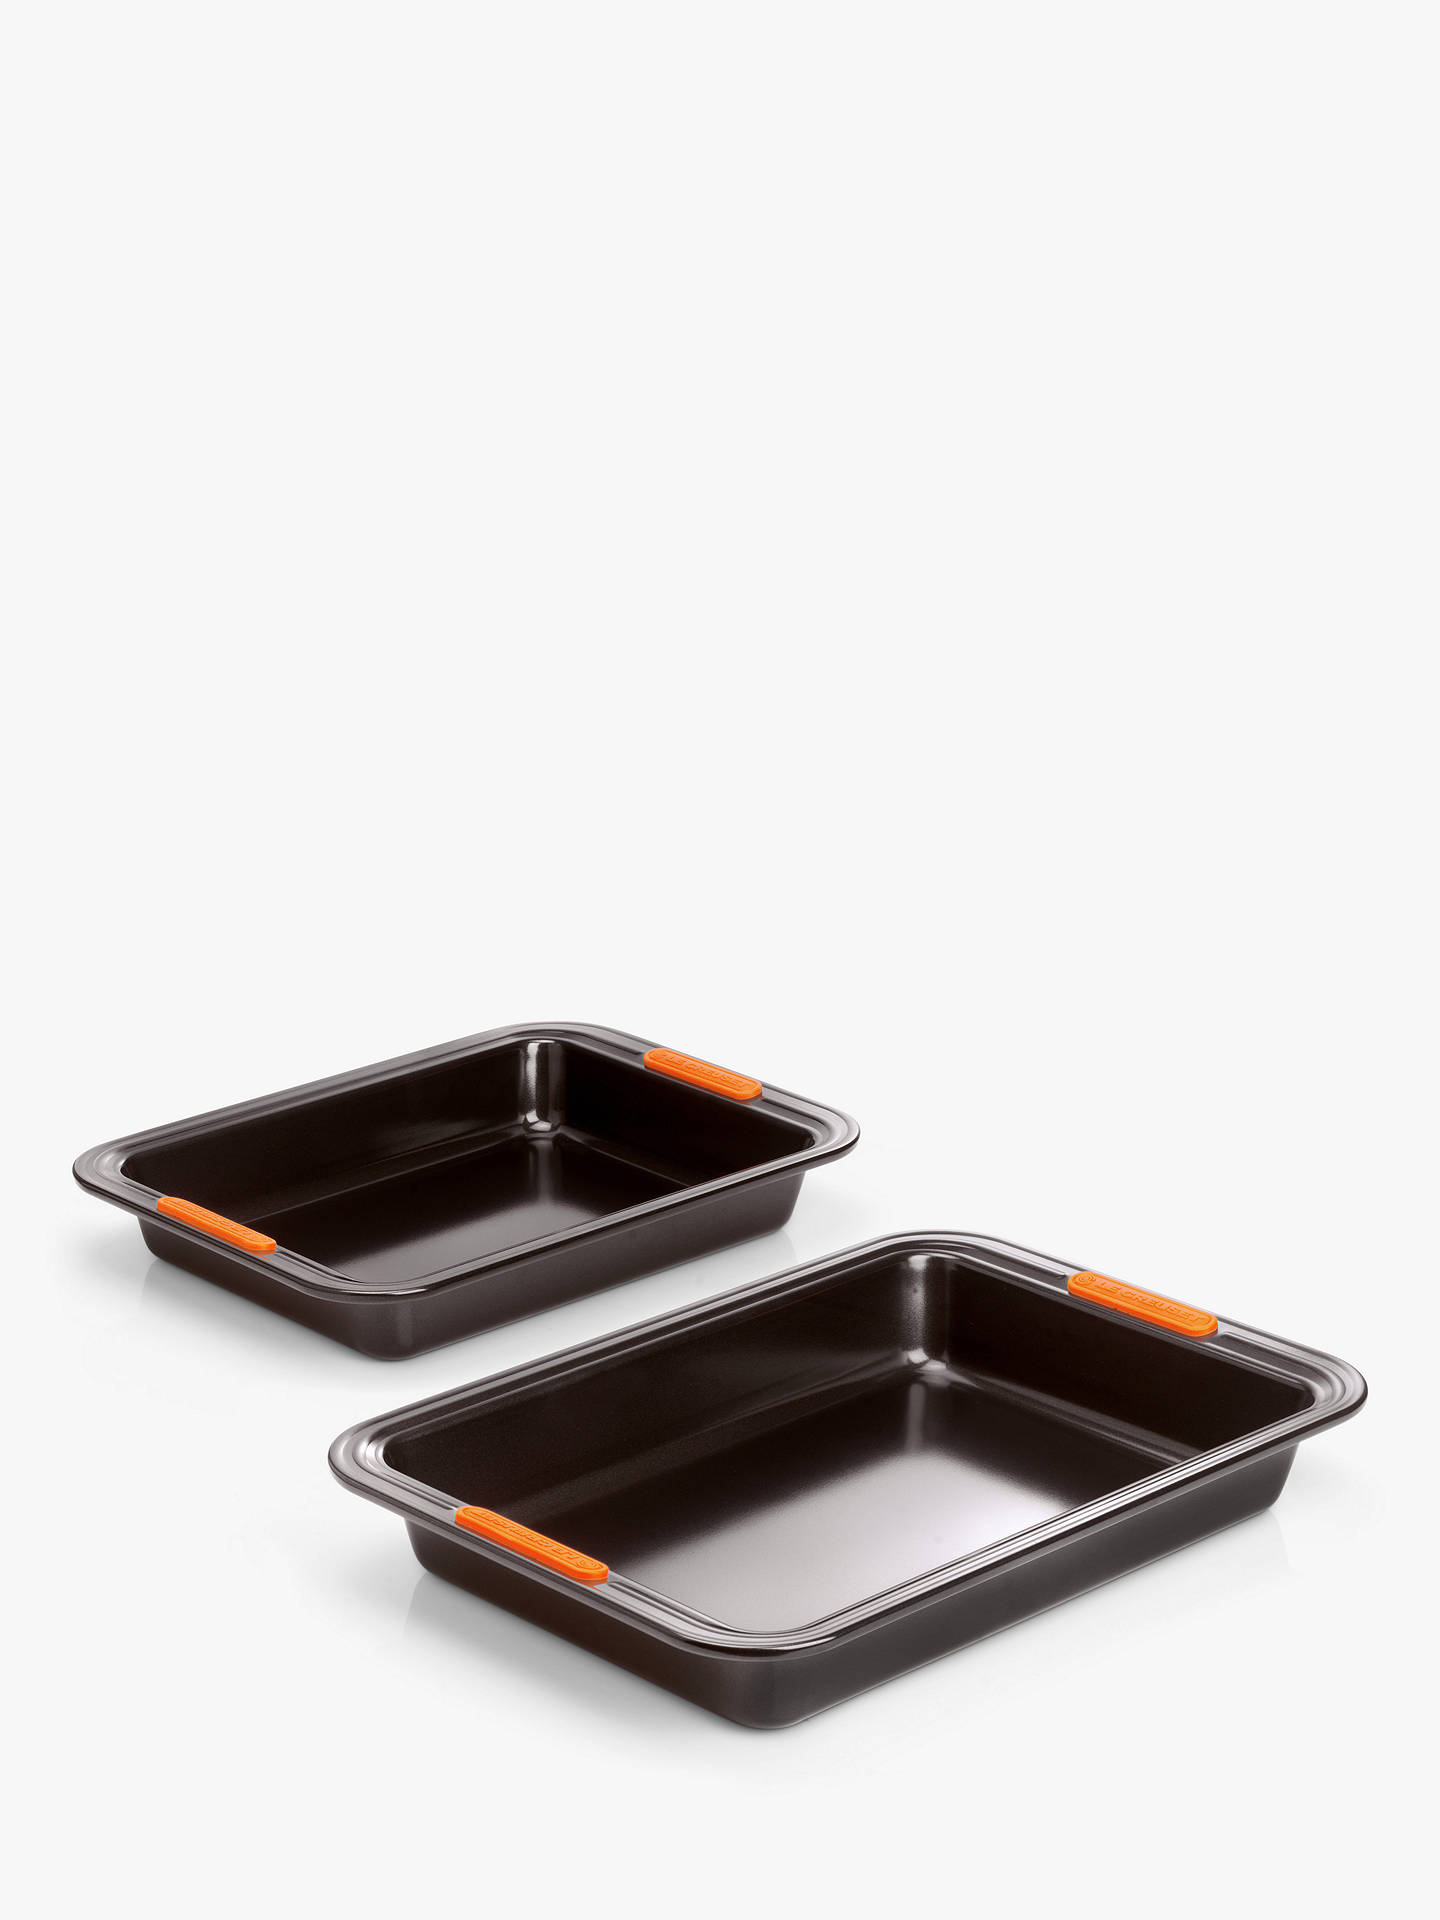 Le Creuset Non Stick Rectangular Cake Tin Baking Trays, Set Of 2, Black by Le Creuset